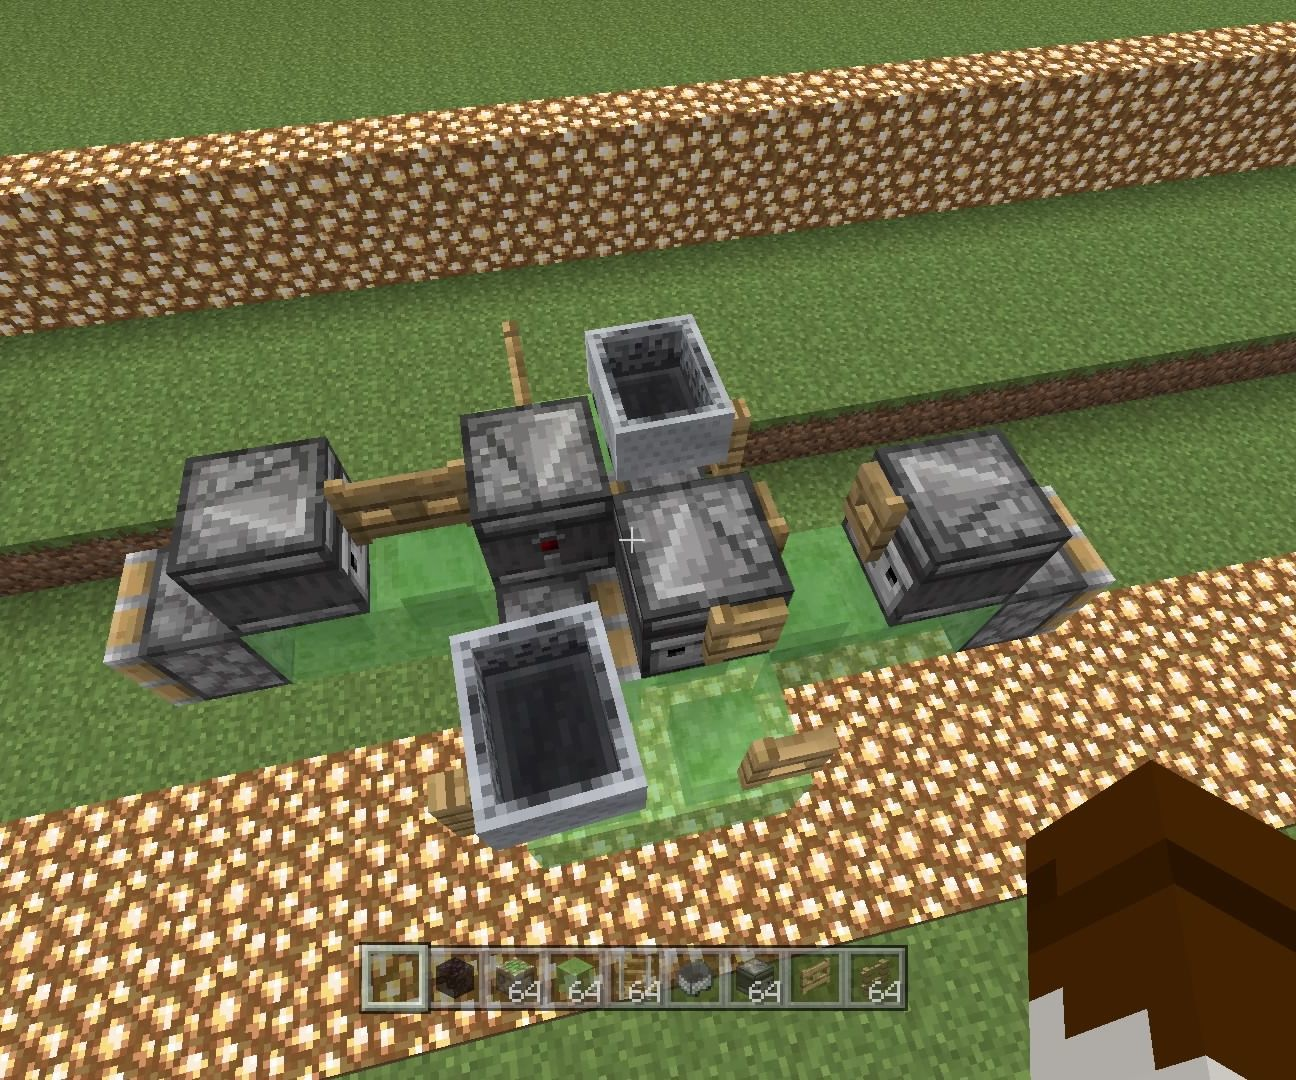 Minecraft SethBling's Simple 2-way Controllable Flying